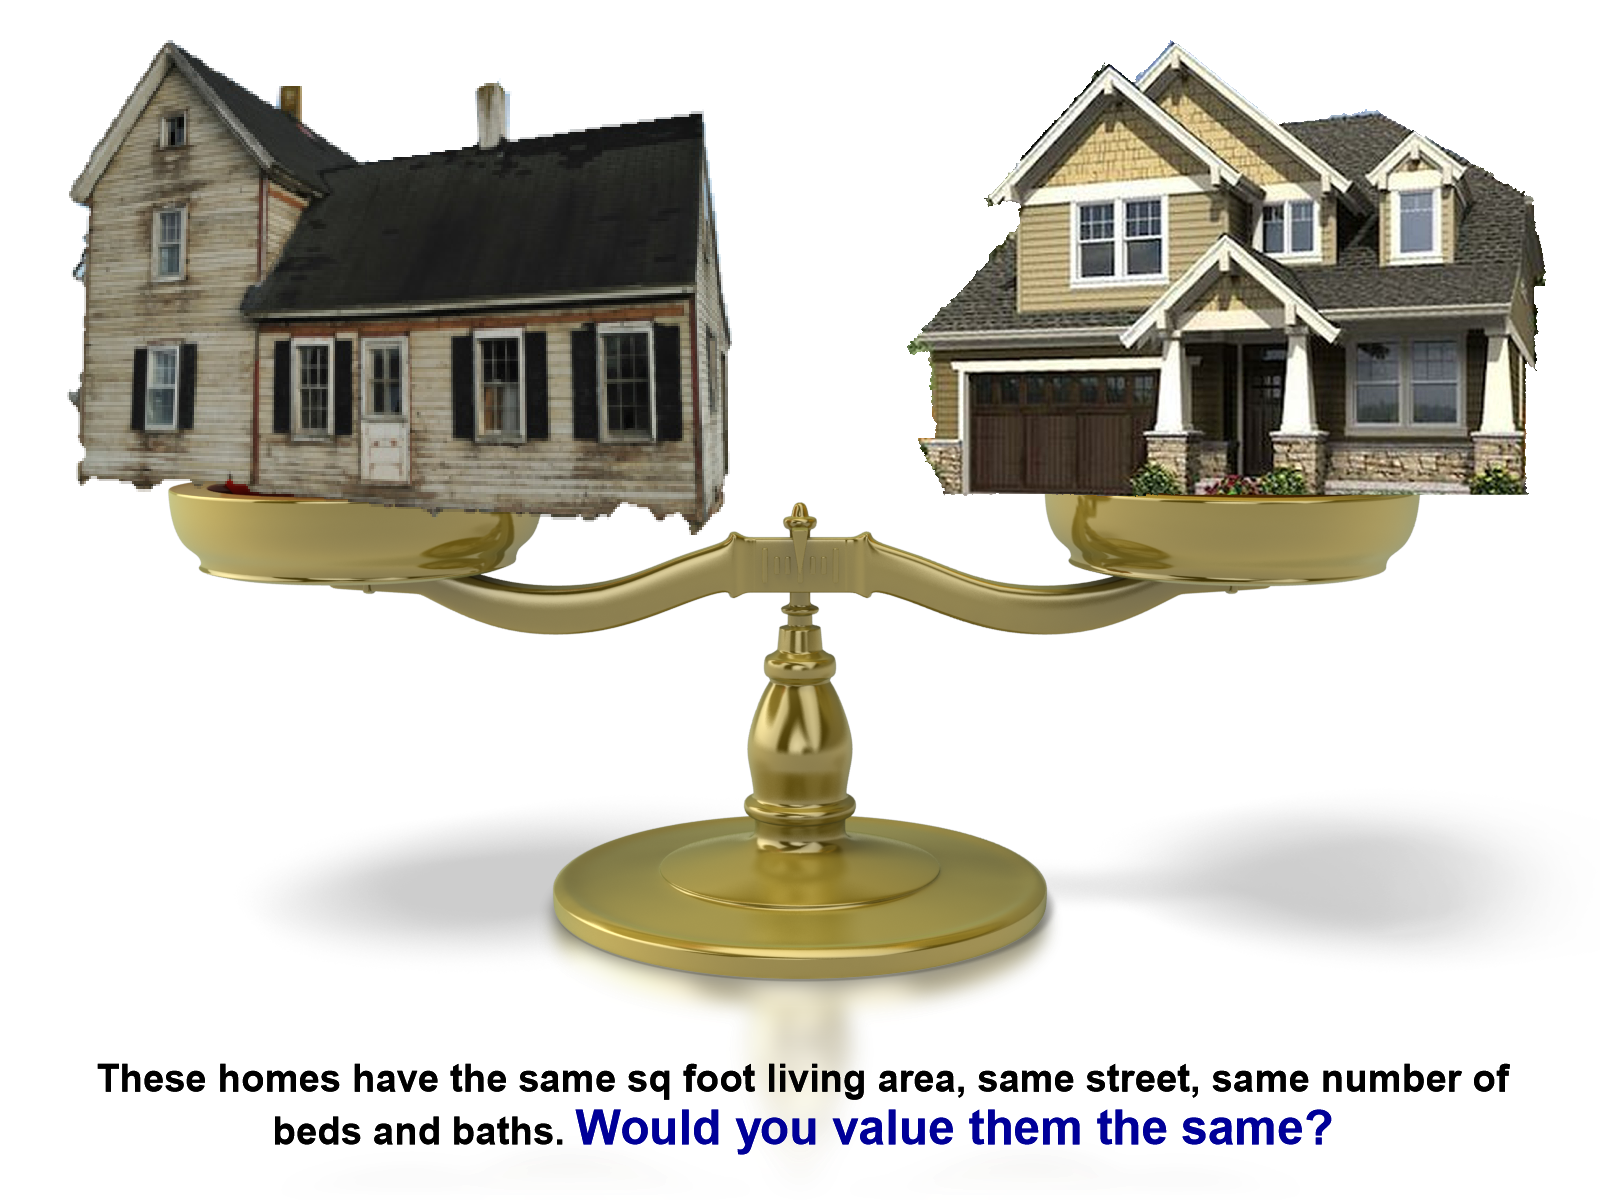 House pictures clipart with driveway royalty free Why price per square foot is misleading... - RE/MAX Consultant Group ... royalty free